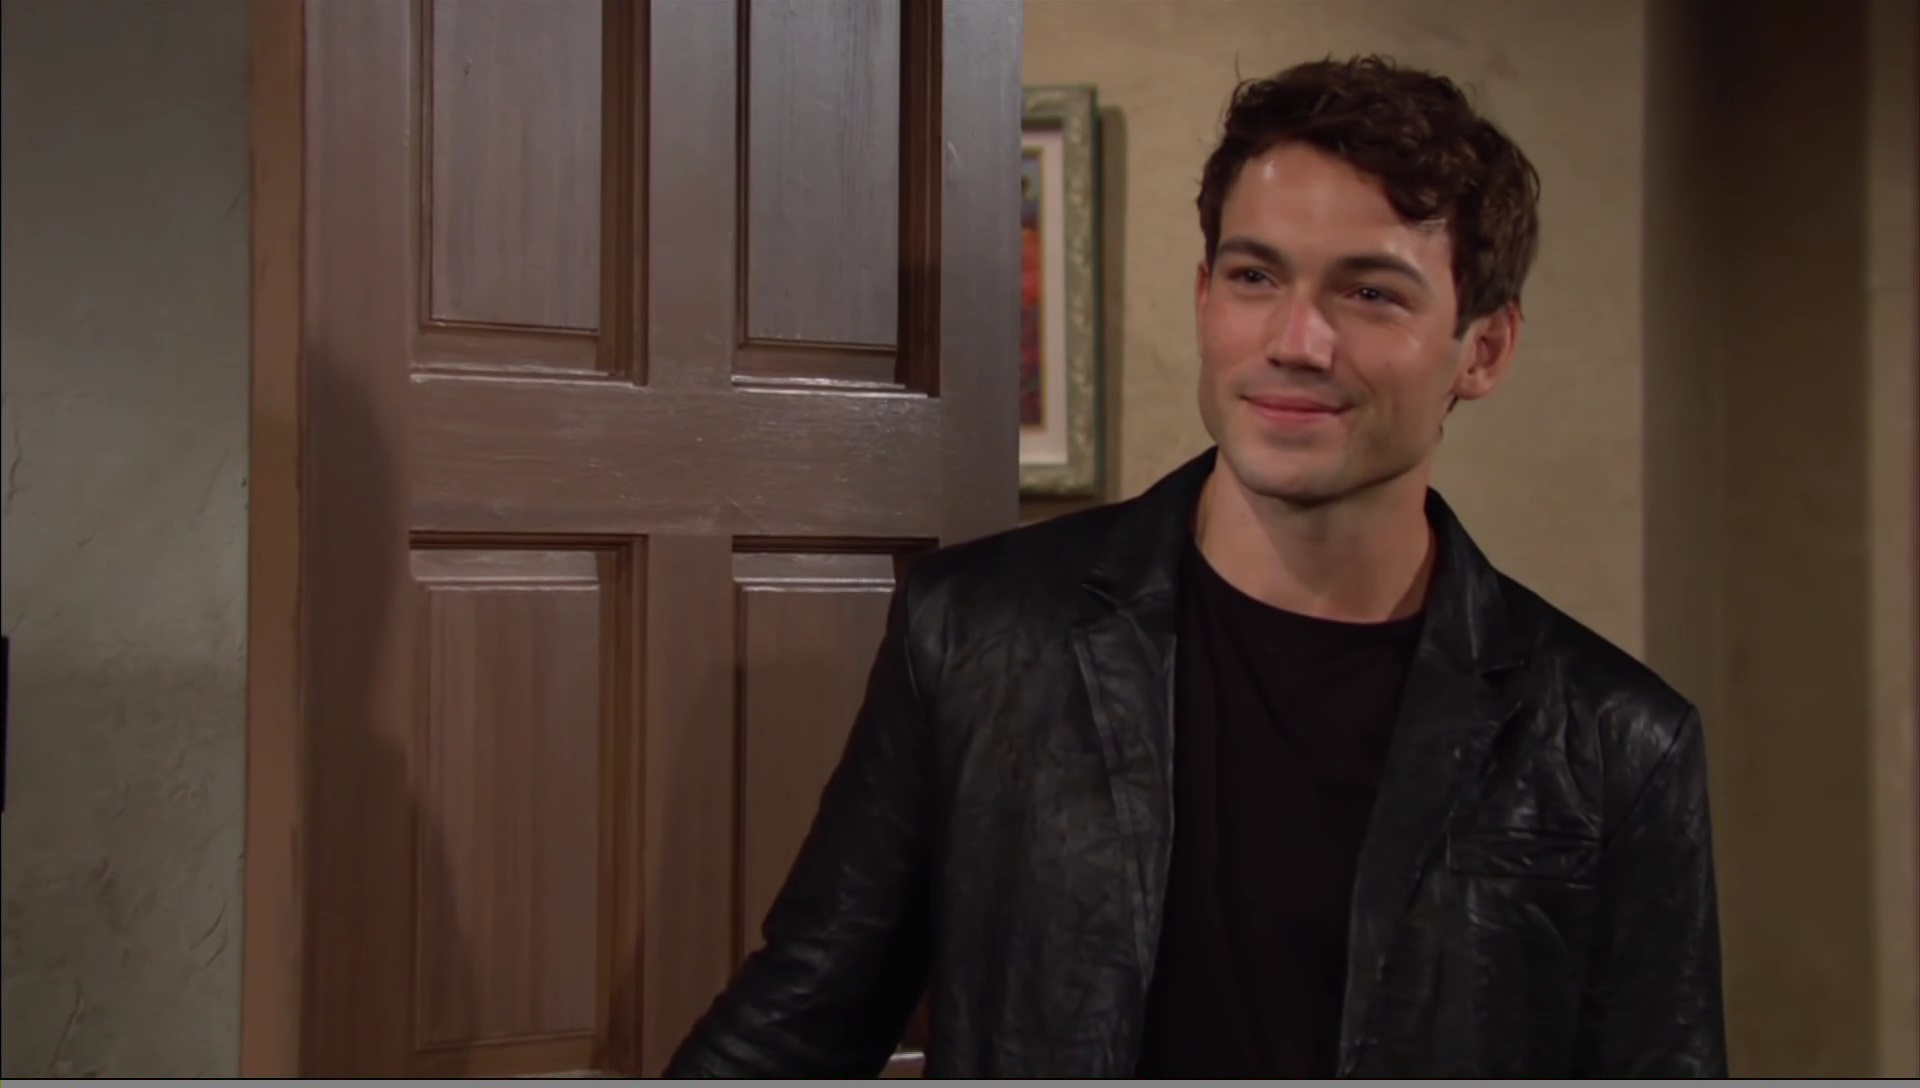 noah young restless first scene